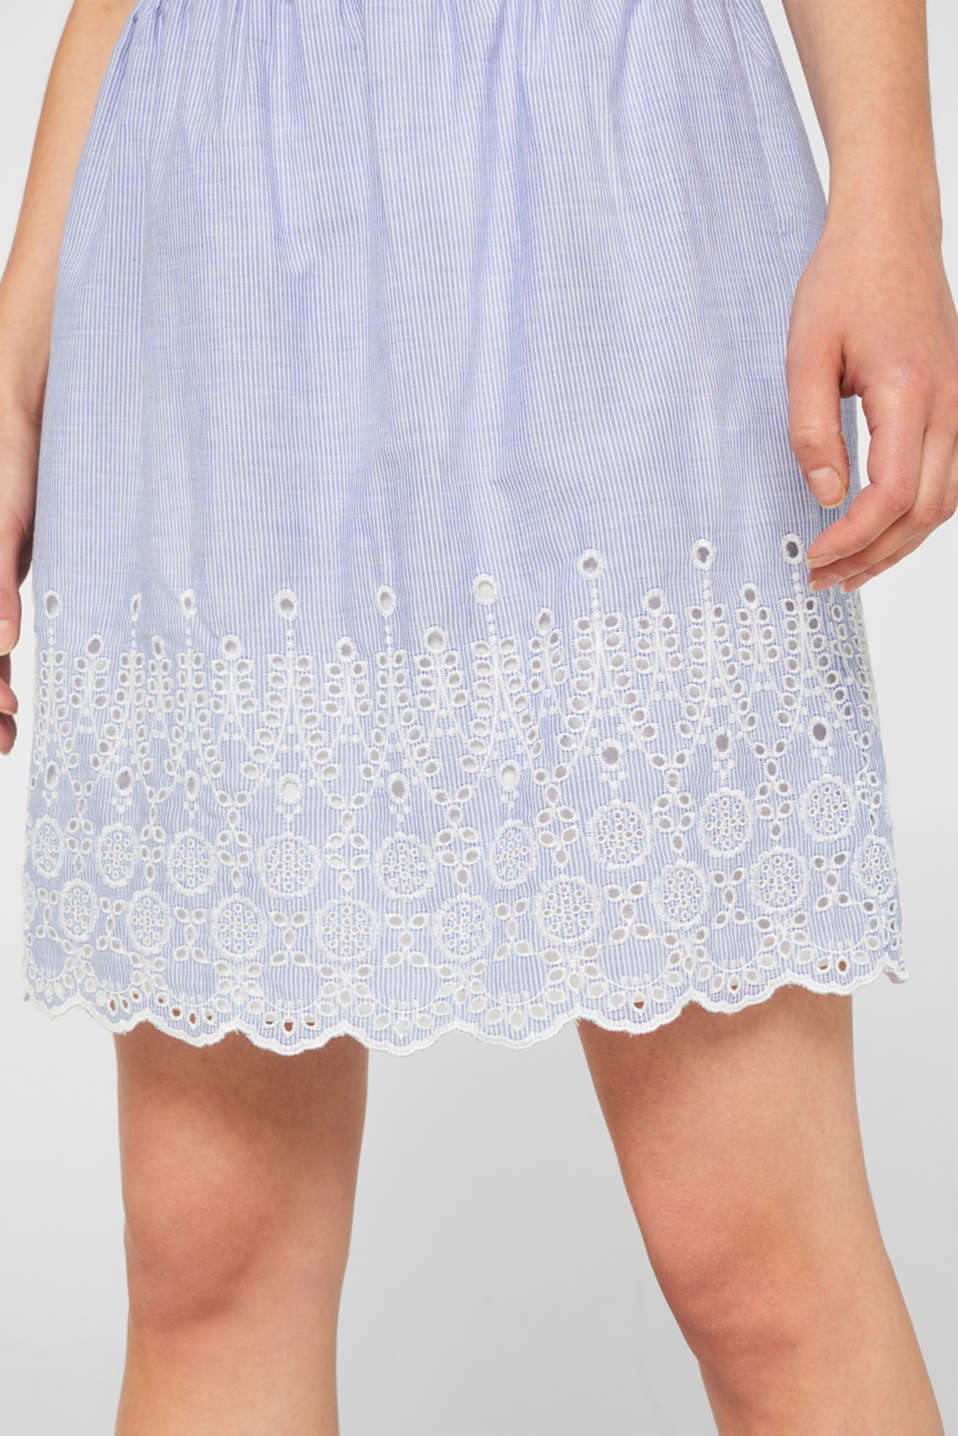 Broderie anglaise detail skirt, 100% cotton, LIGHT BLUE, detail image number 2